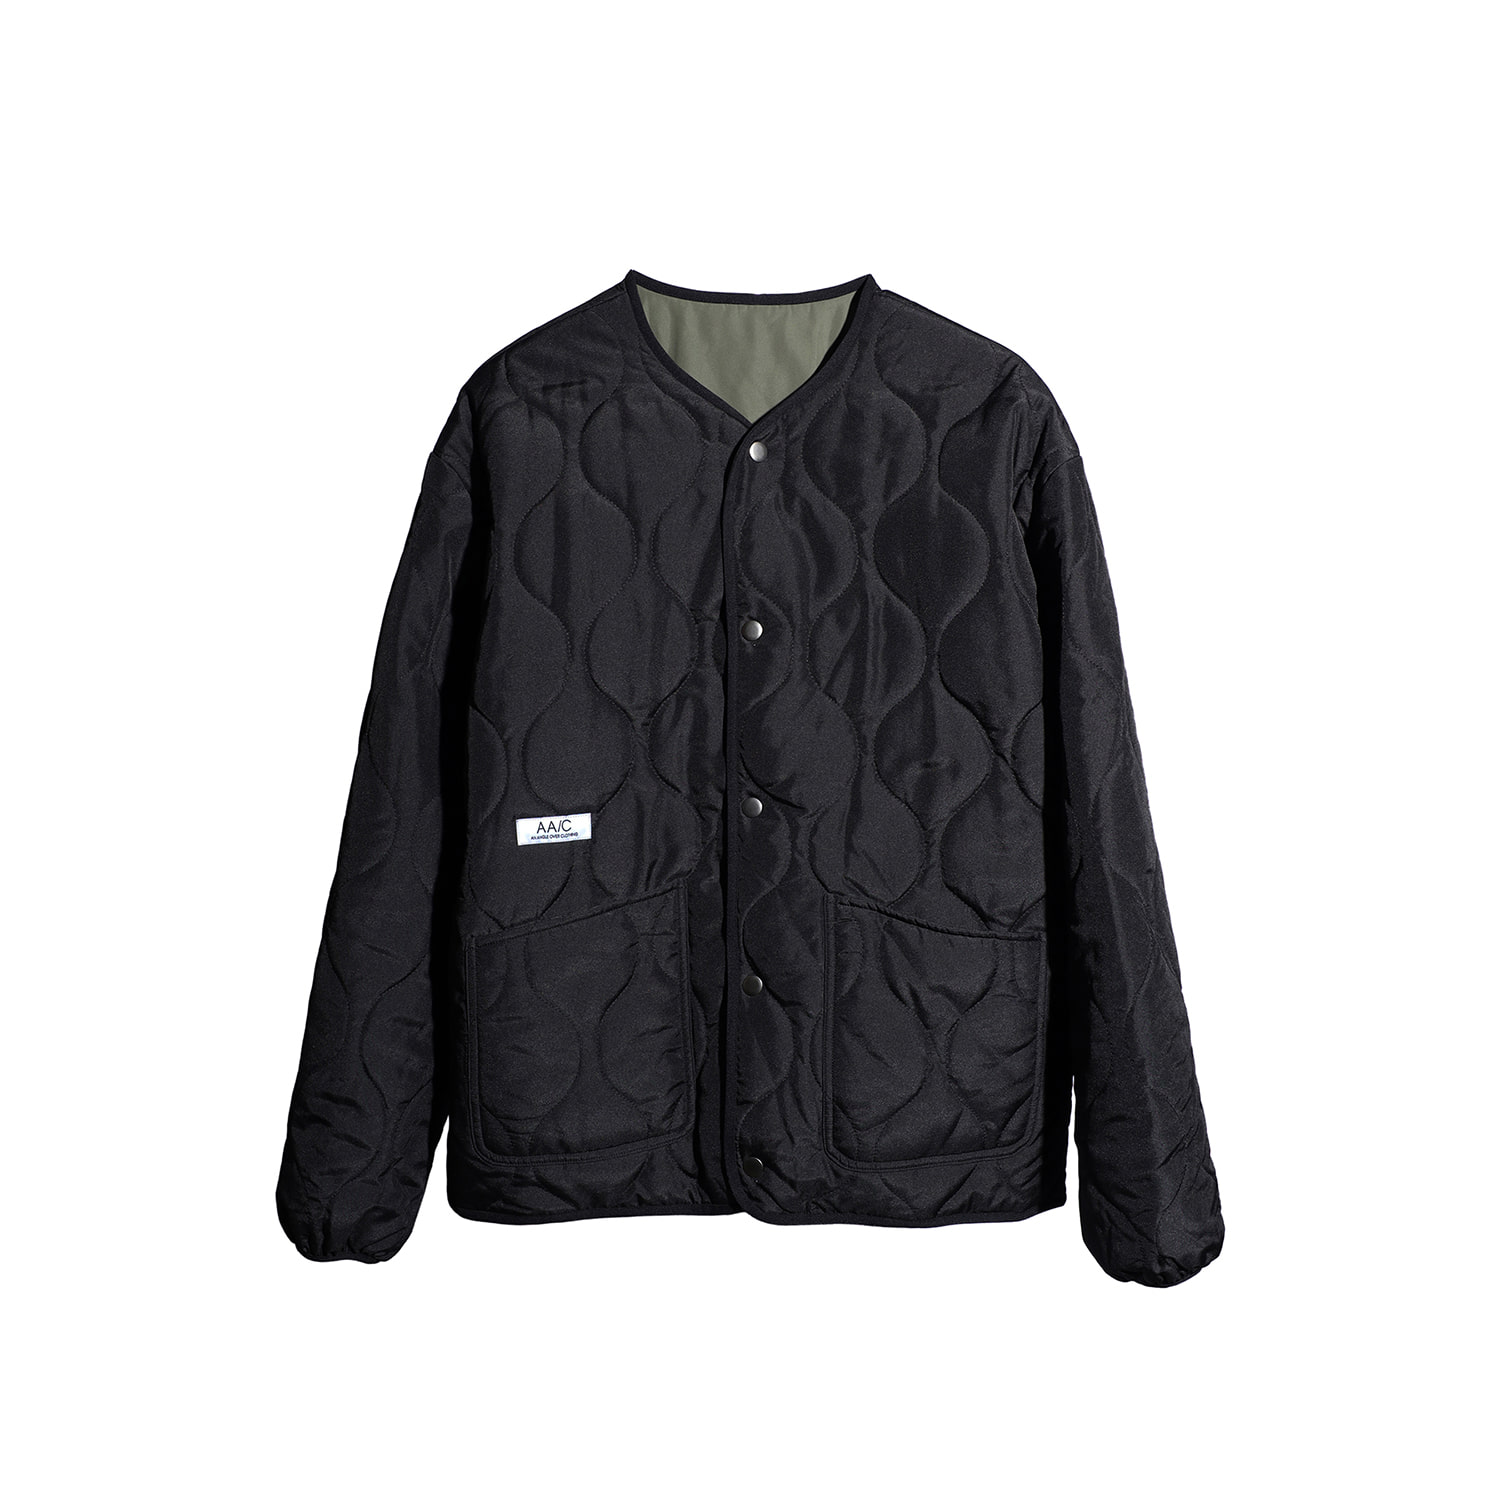 CELLULE Reversible Quilting Jacket